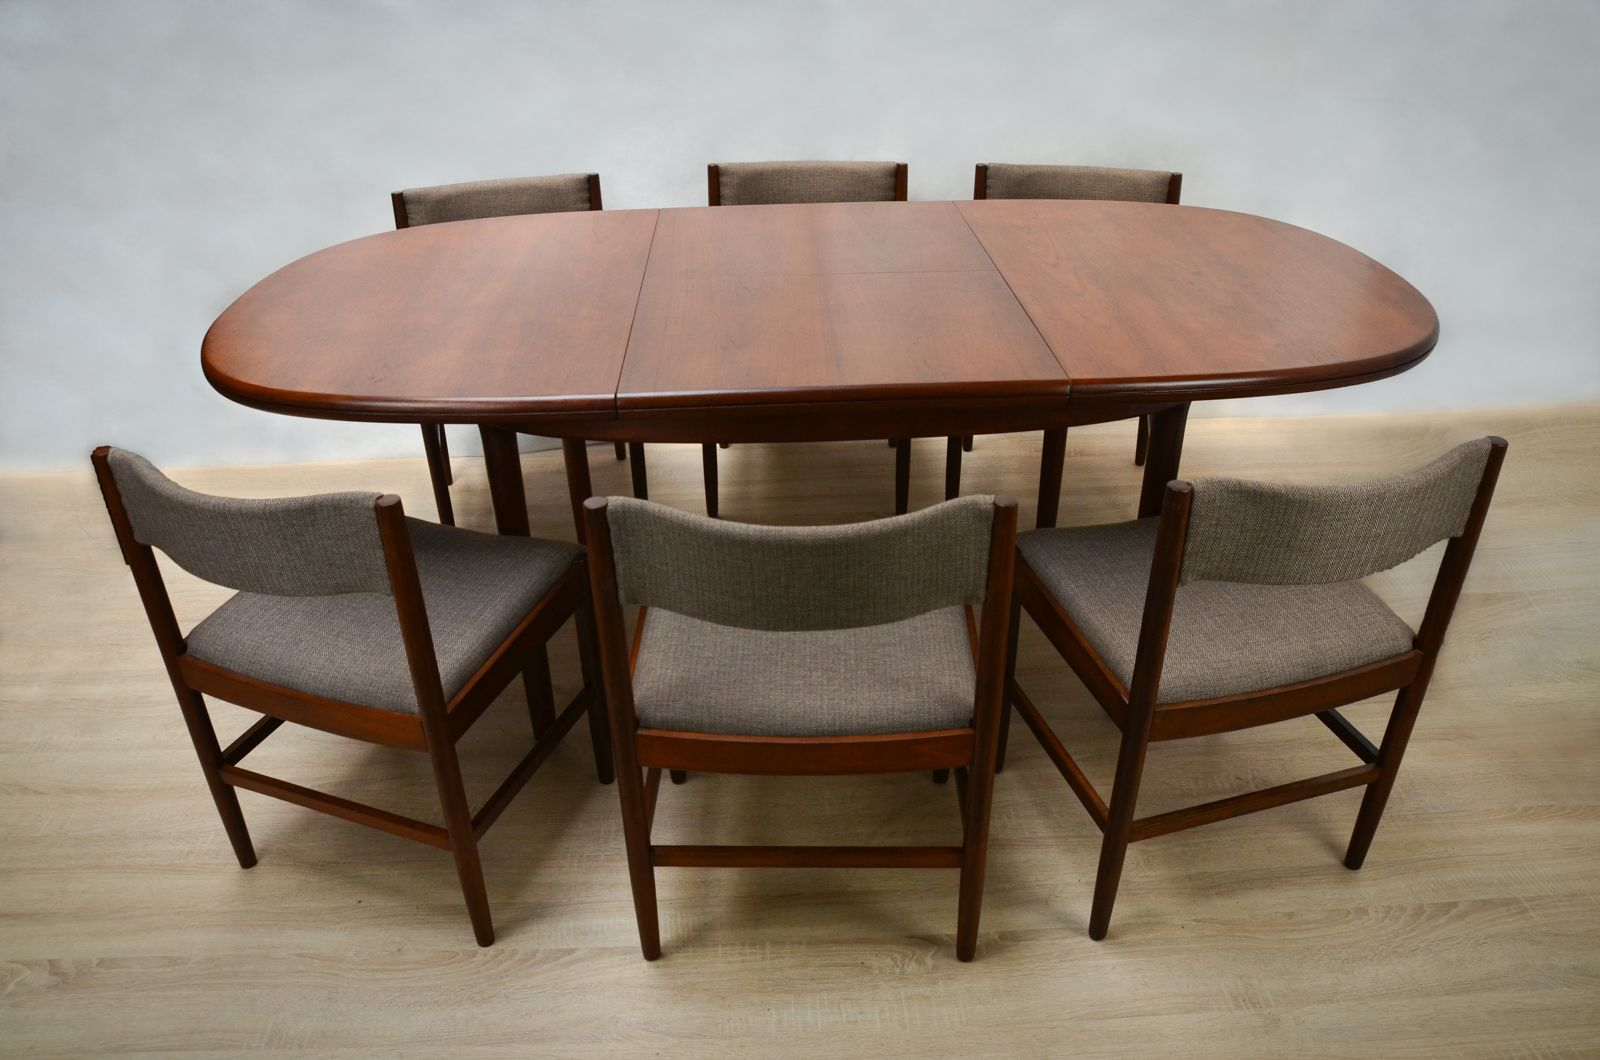 Danish Teak Dining Table With 6 Chairs 1960s Set Of 7